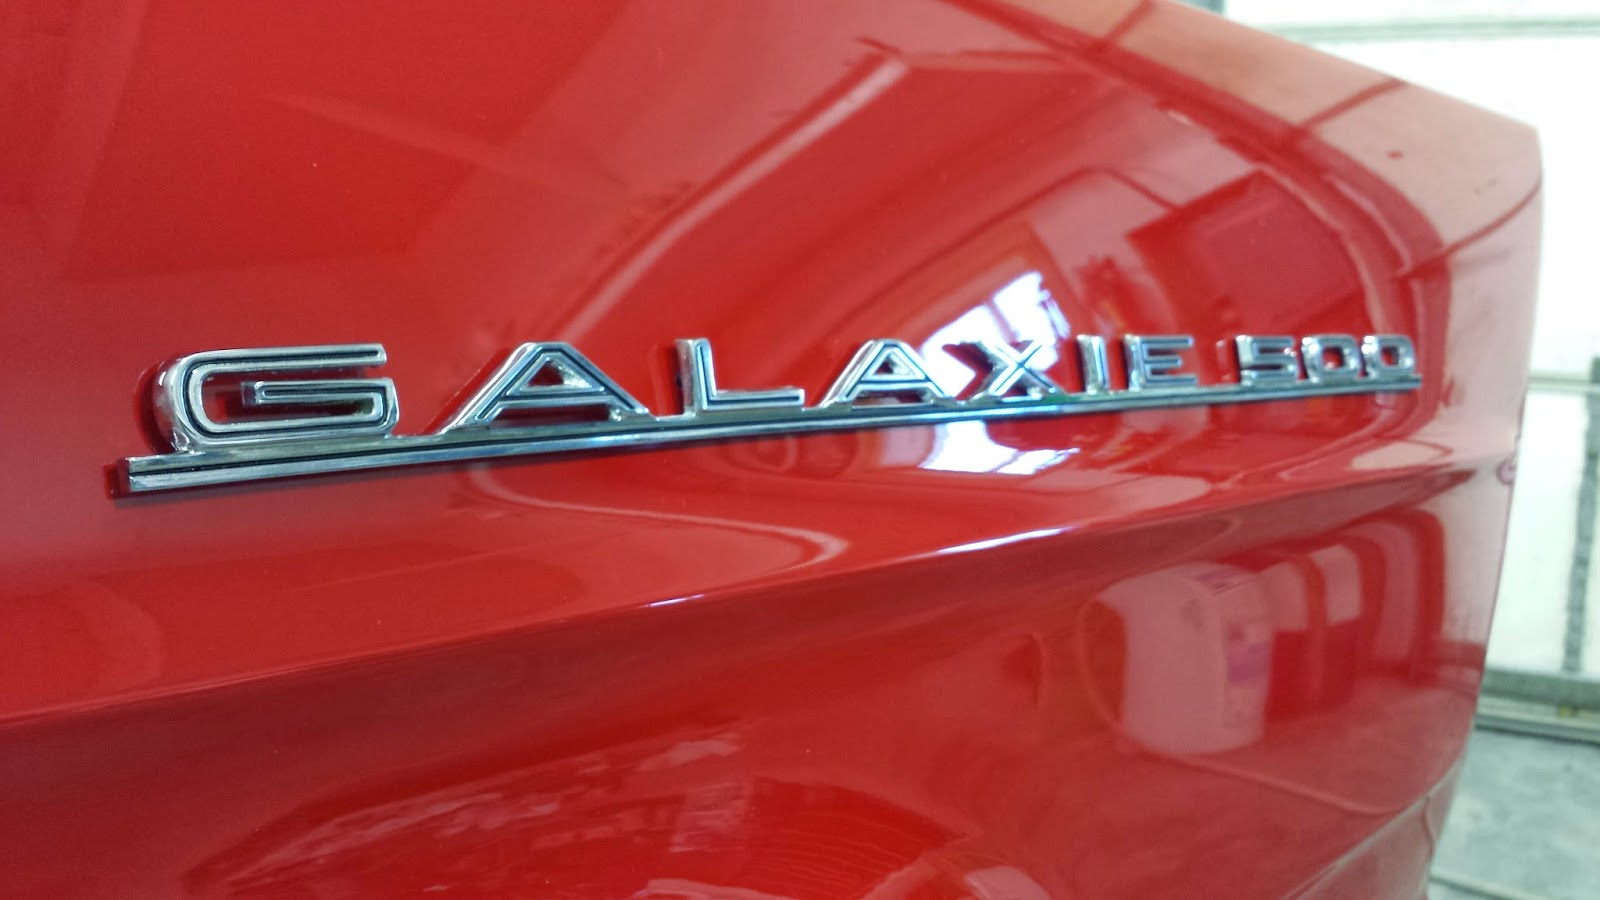 1965 Galaxie 500 fender emblem